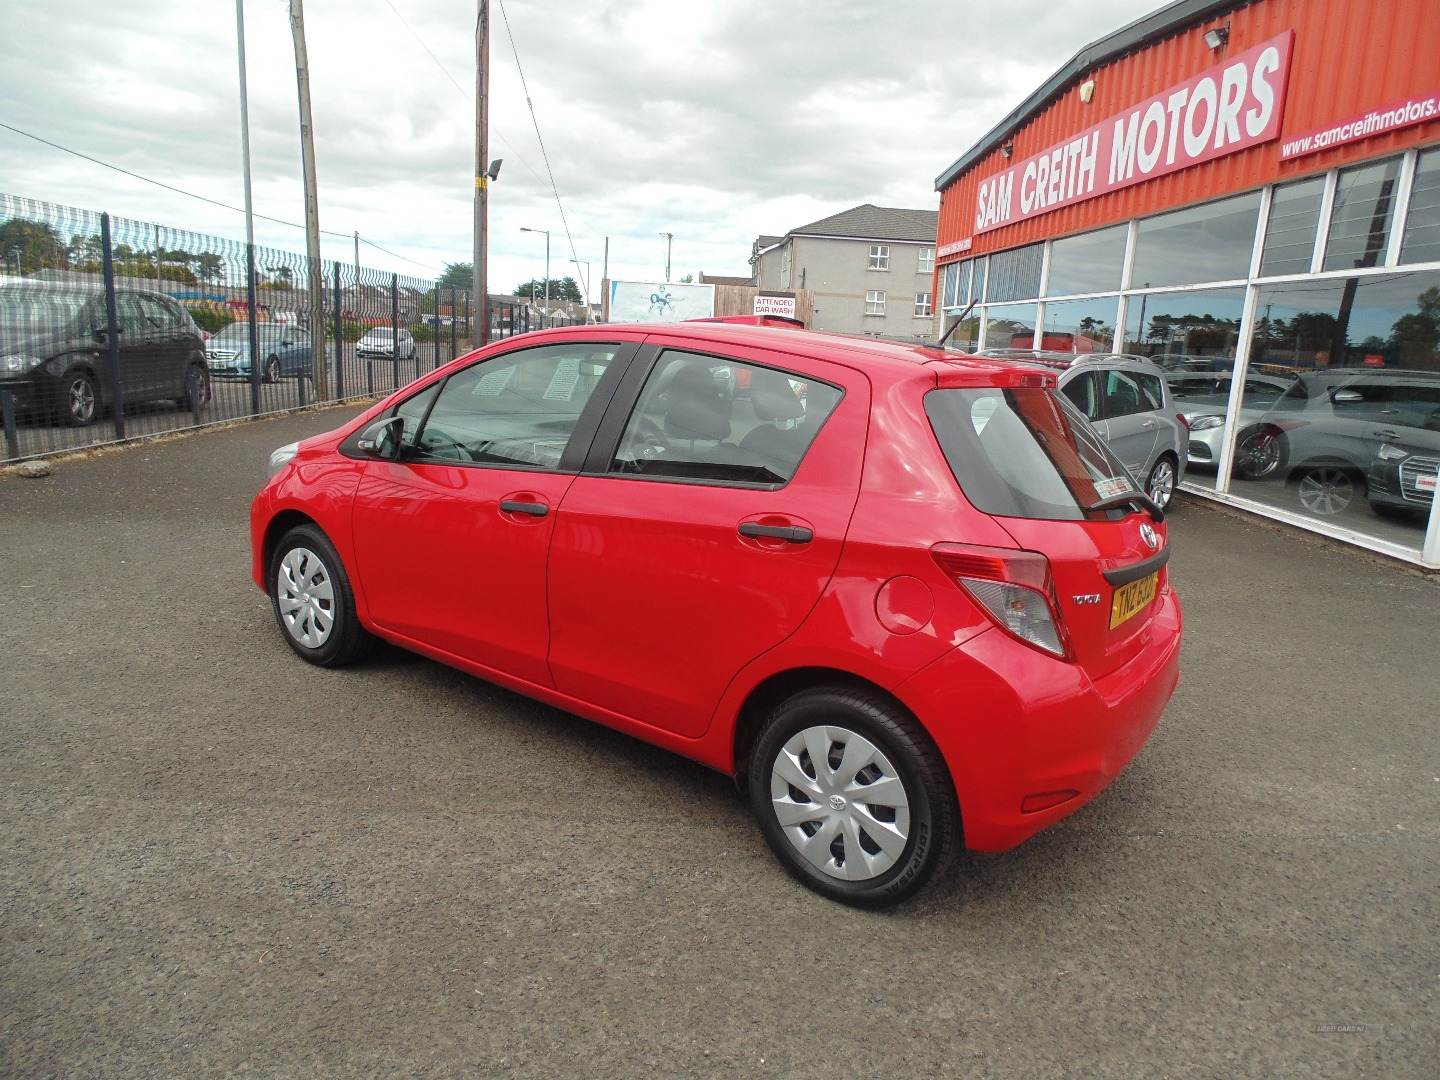 2014 Toyota Yaris 1.0  VVT-i  Active  5dr Petrol Manual  – Sam Creith Motors Ballymoney full